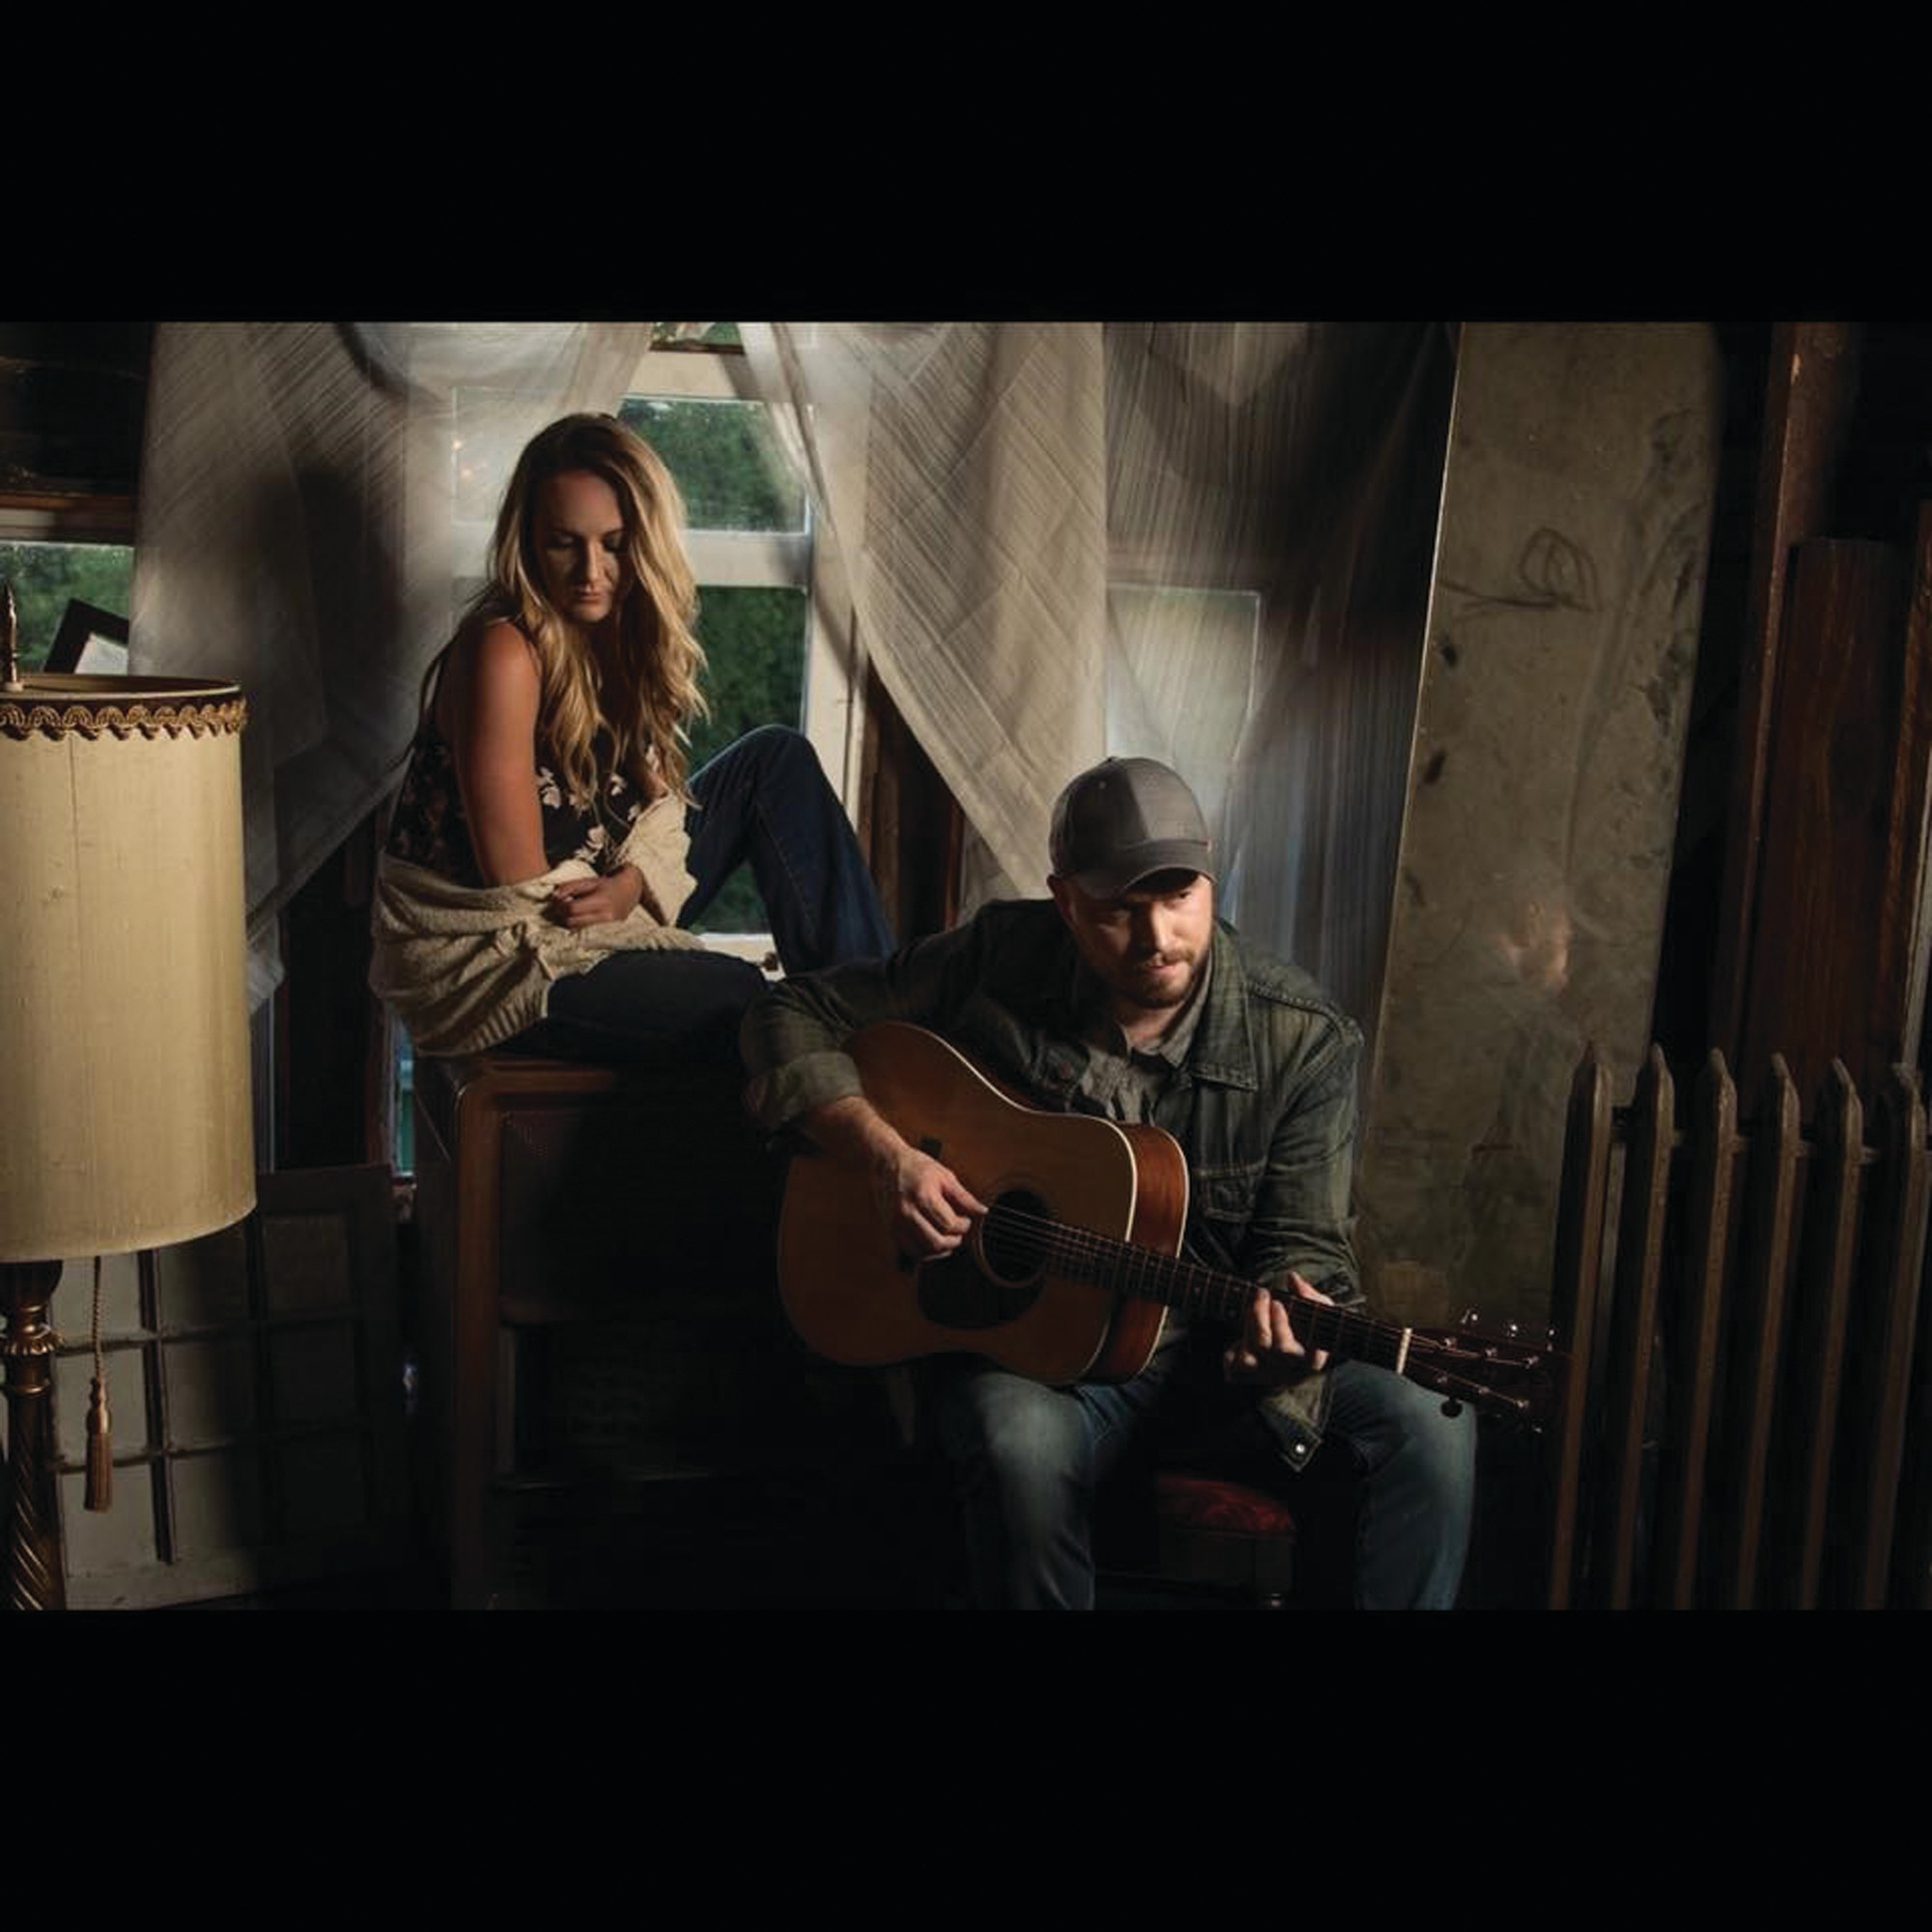 Blue Honey, the husband-and-wife duo of Troy Brooks and Kassie Jordan of Nashville, will sing their original country and American songs during the evening at the Opera House.